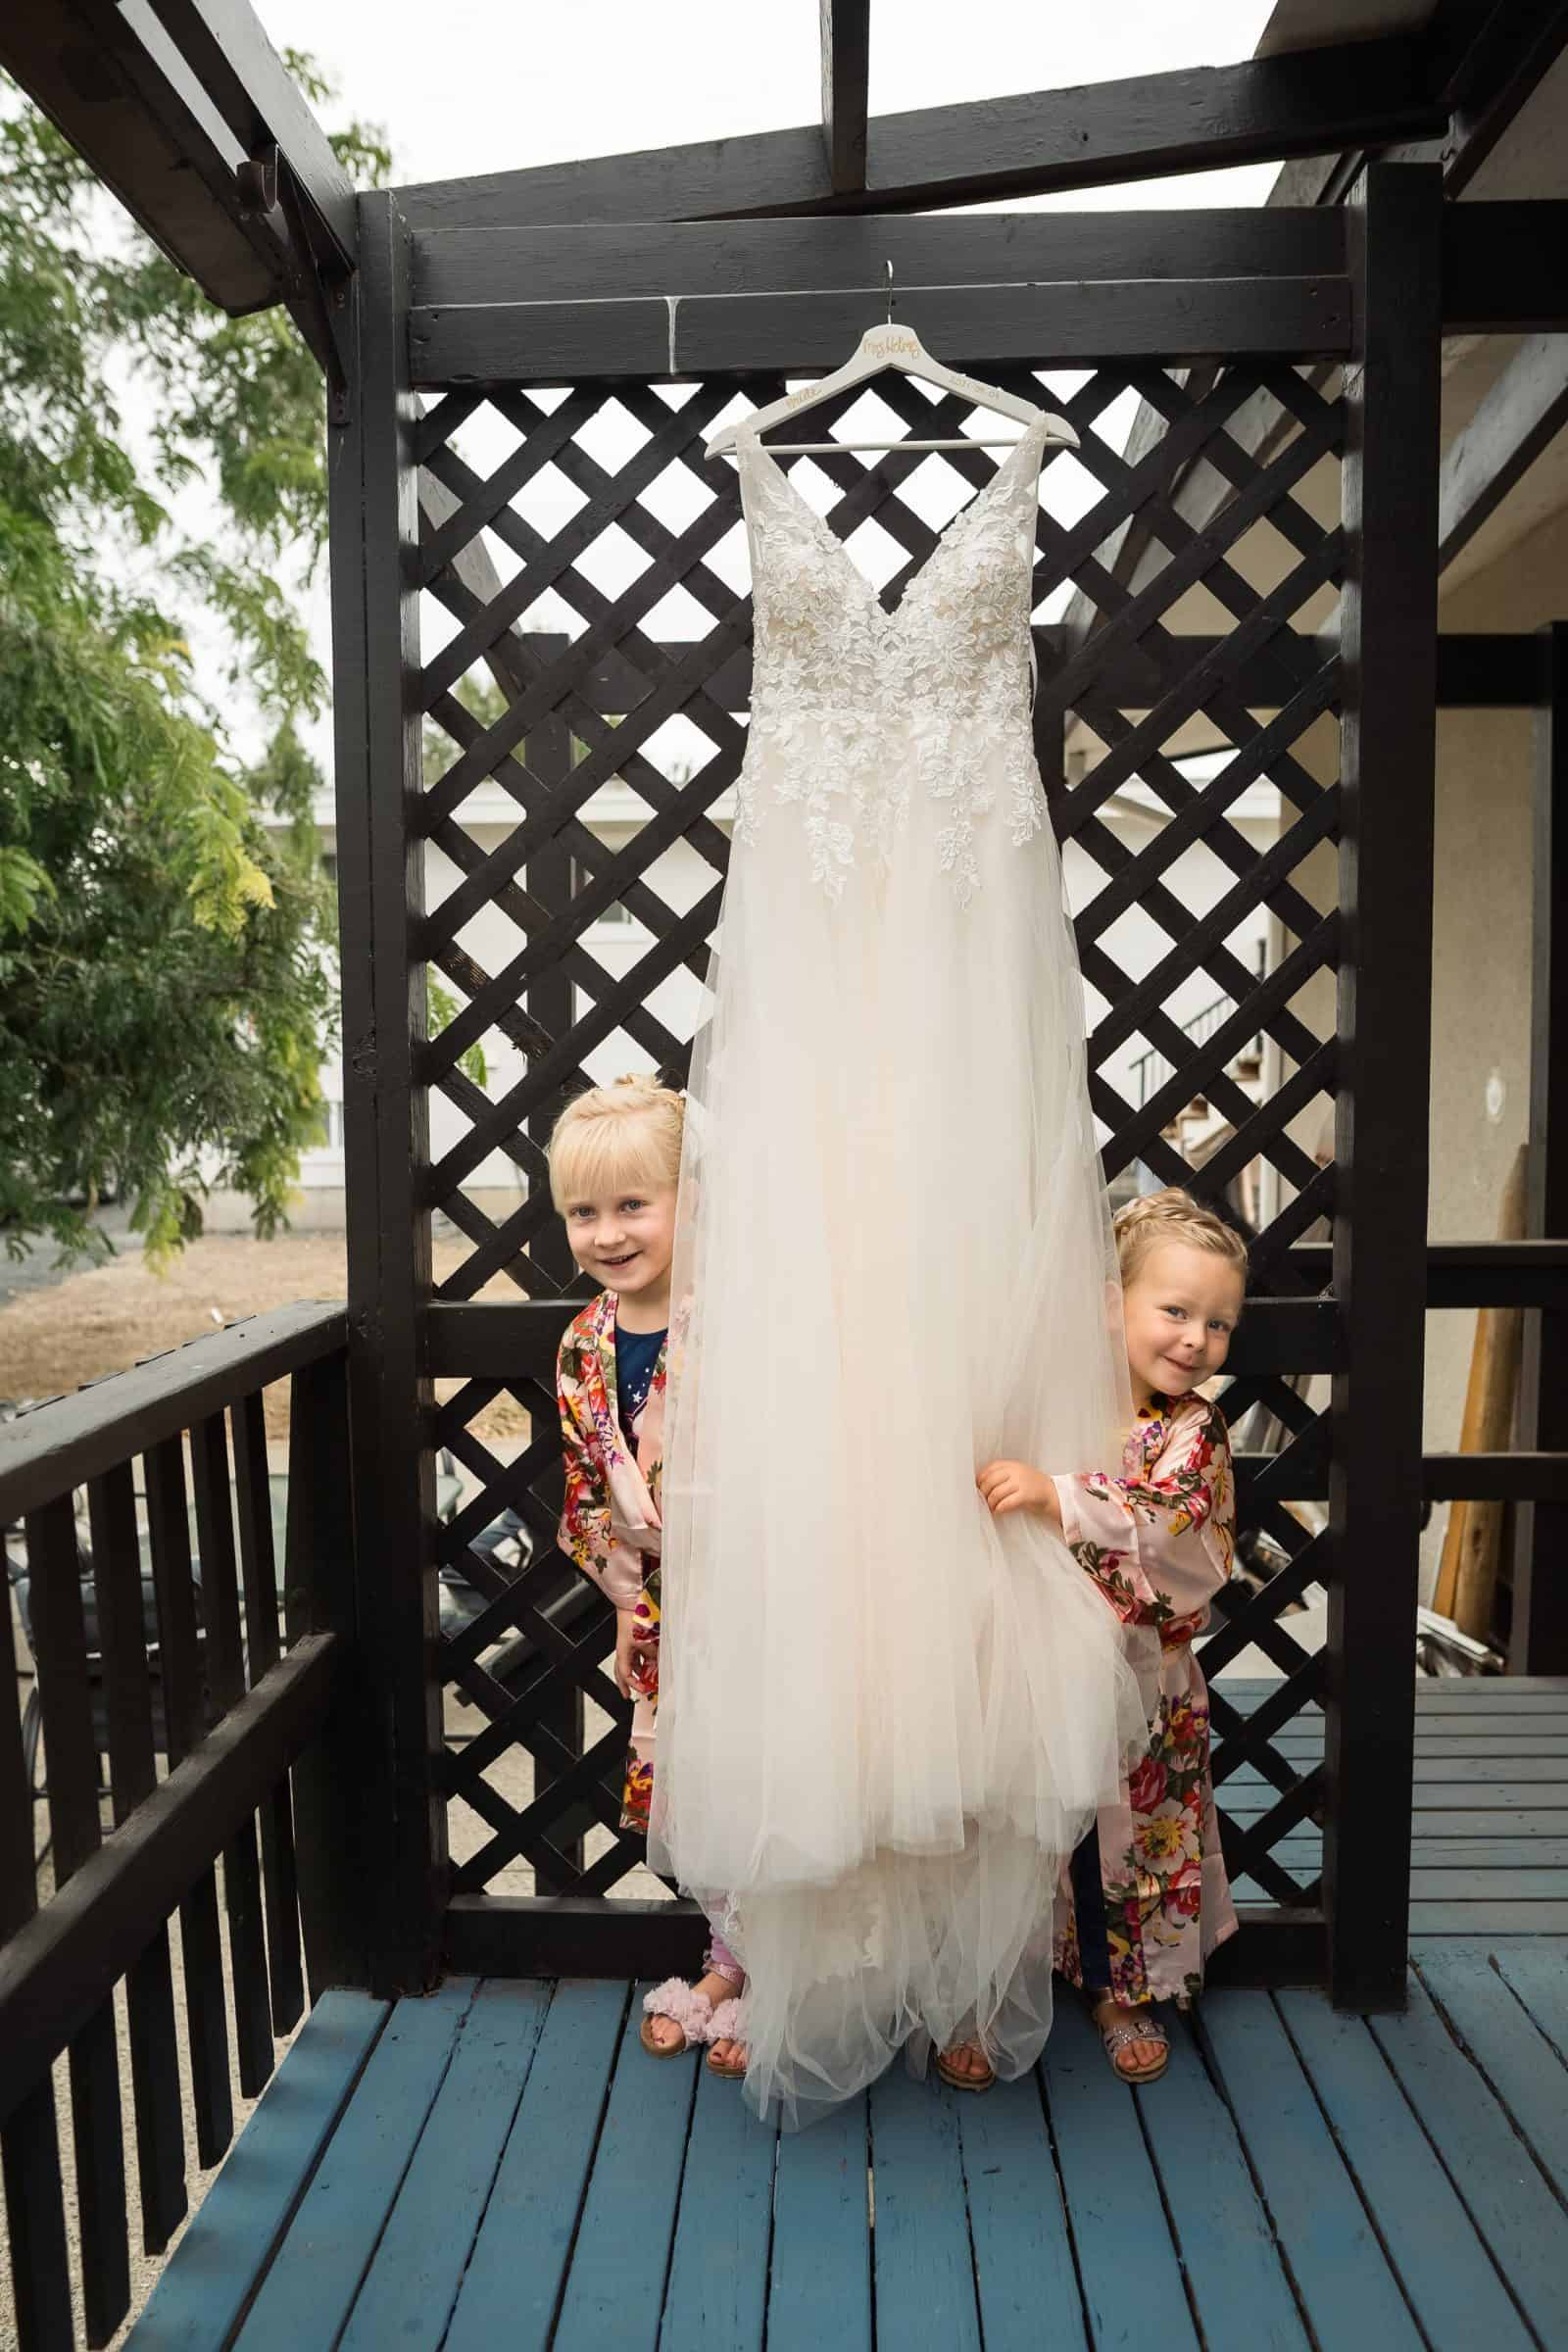 wedding dress handing with flower girls peeking out from behind it